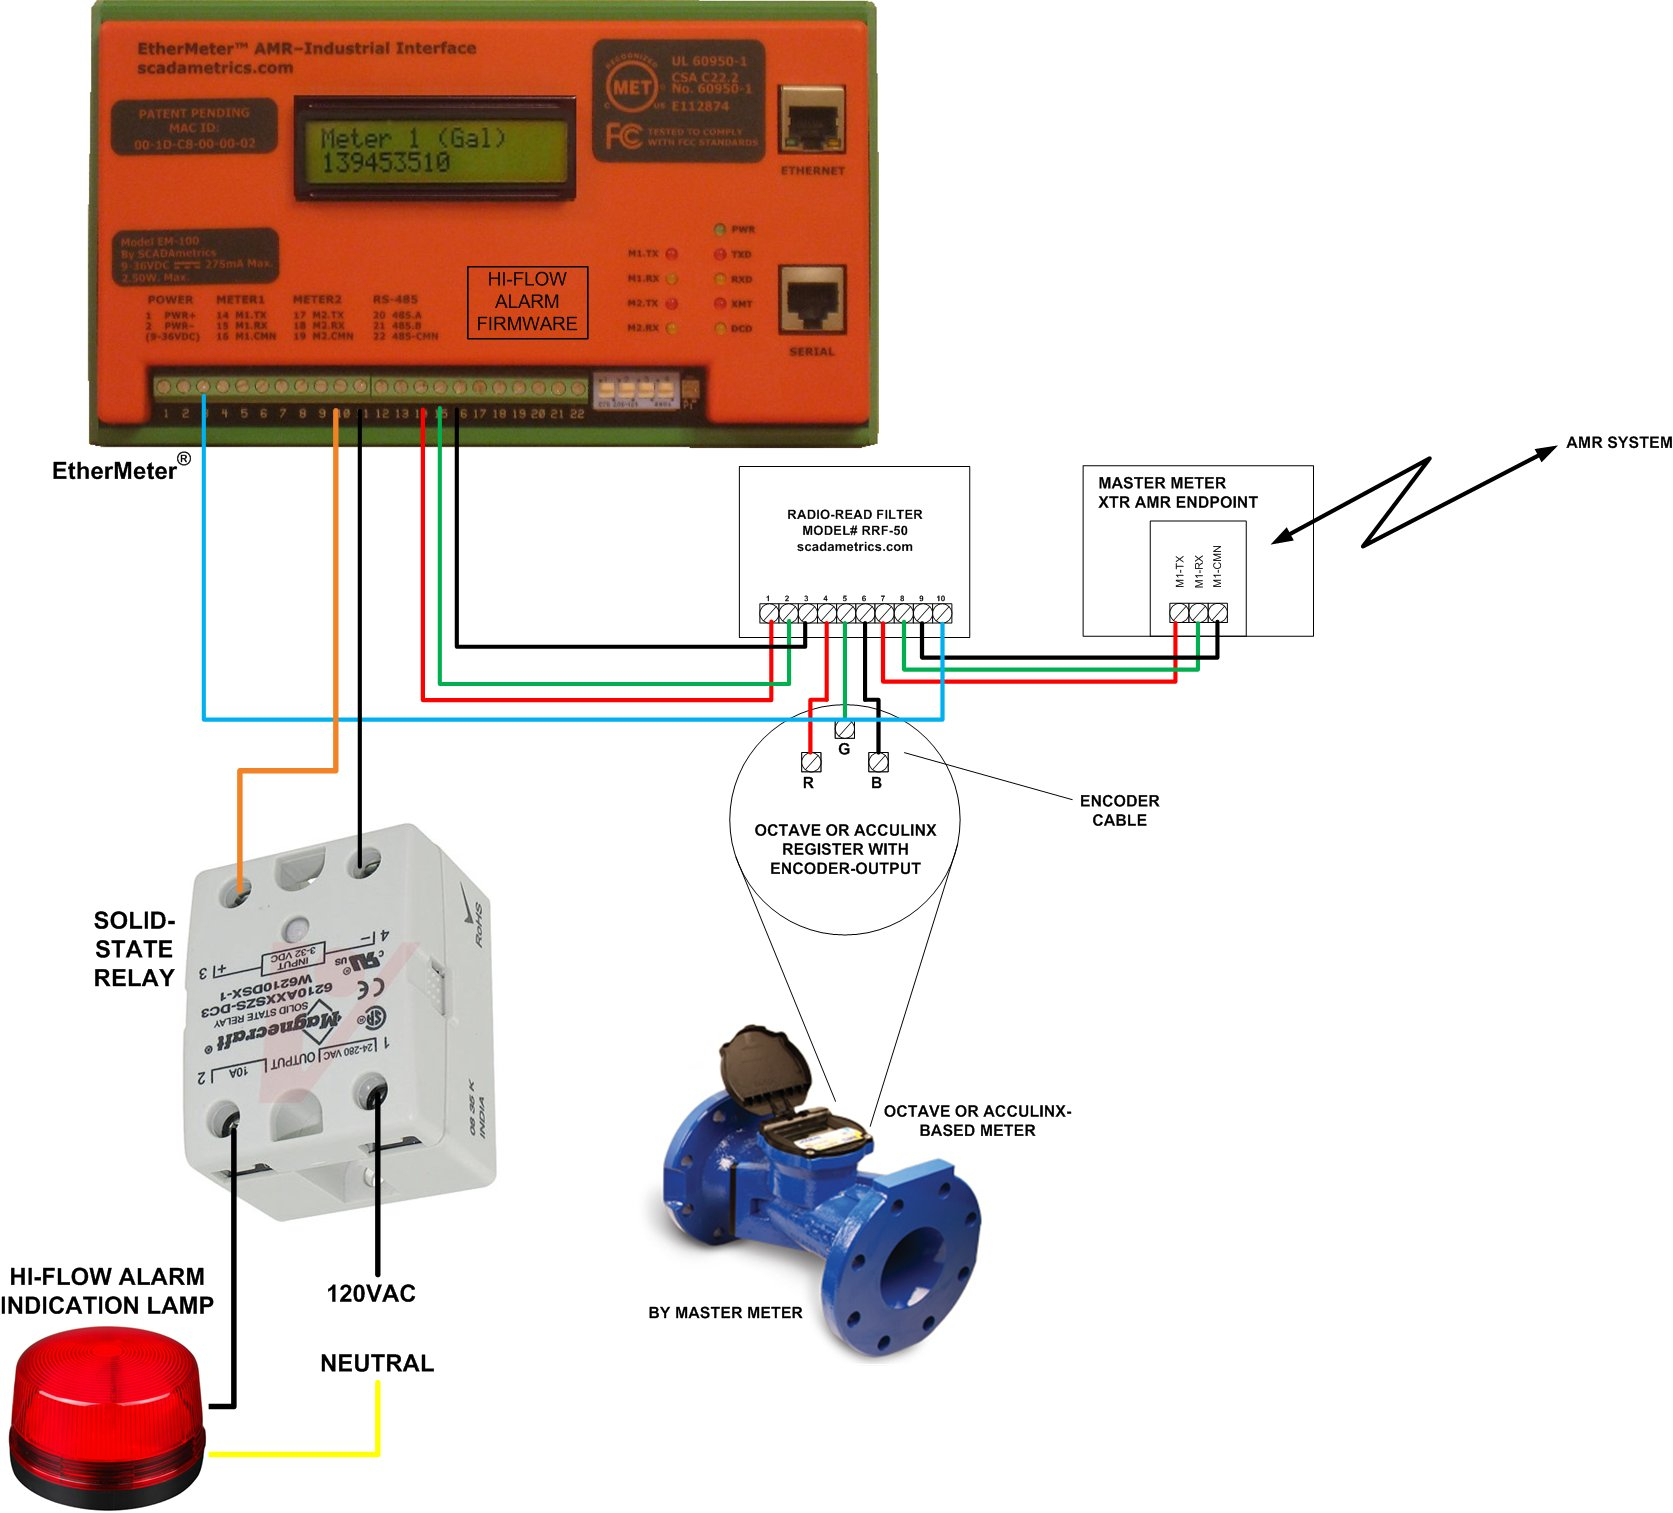 neptune water meter wiring diagram Collection-BooneIA Schematic 01 In Flow Meter Wiring Diagram 1-r